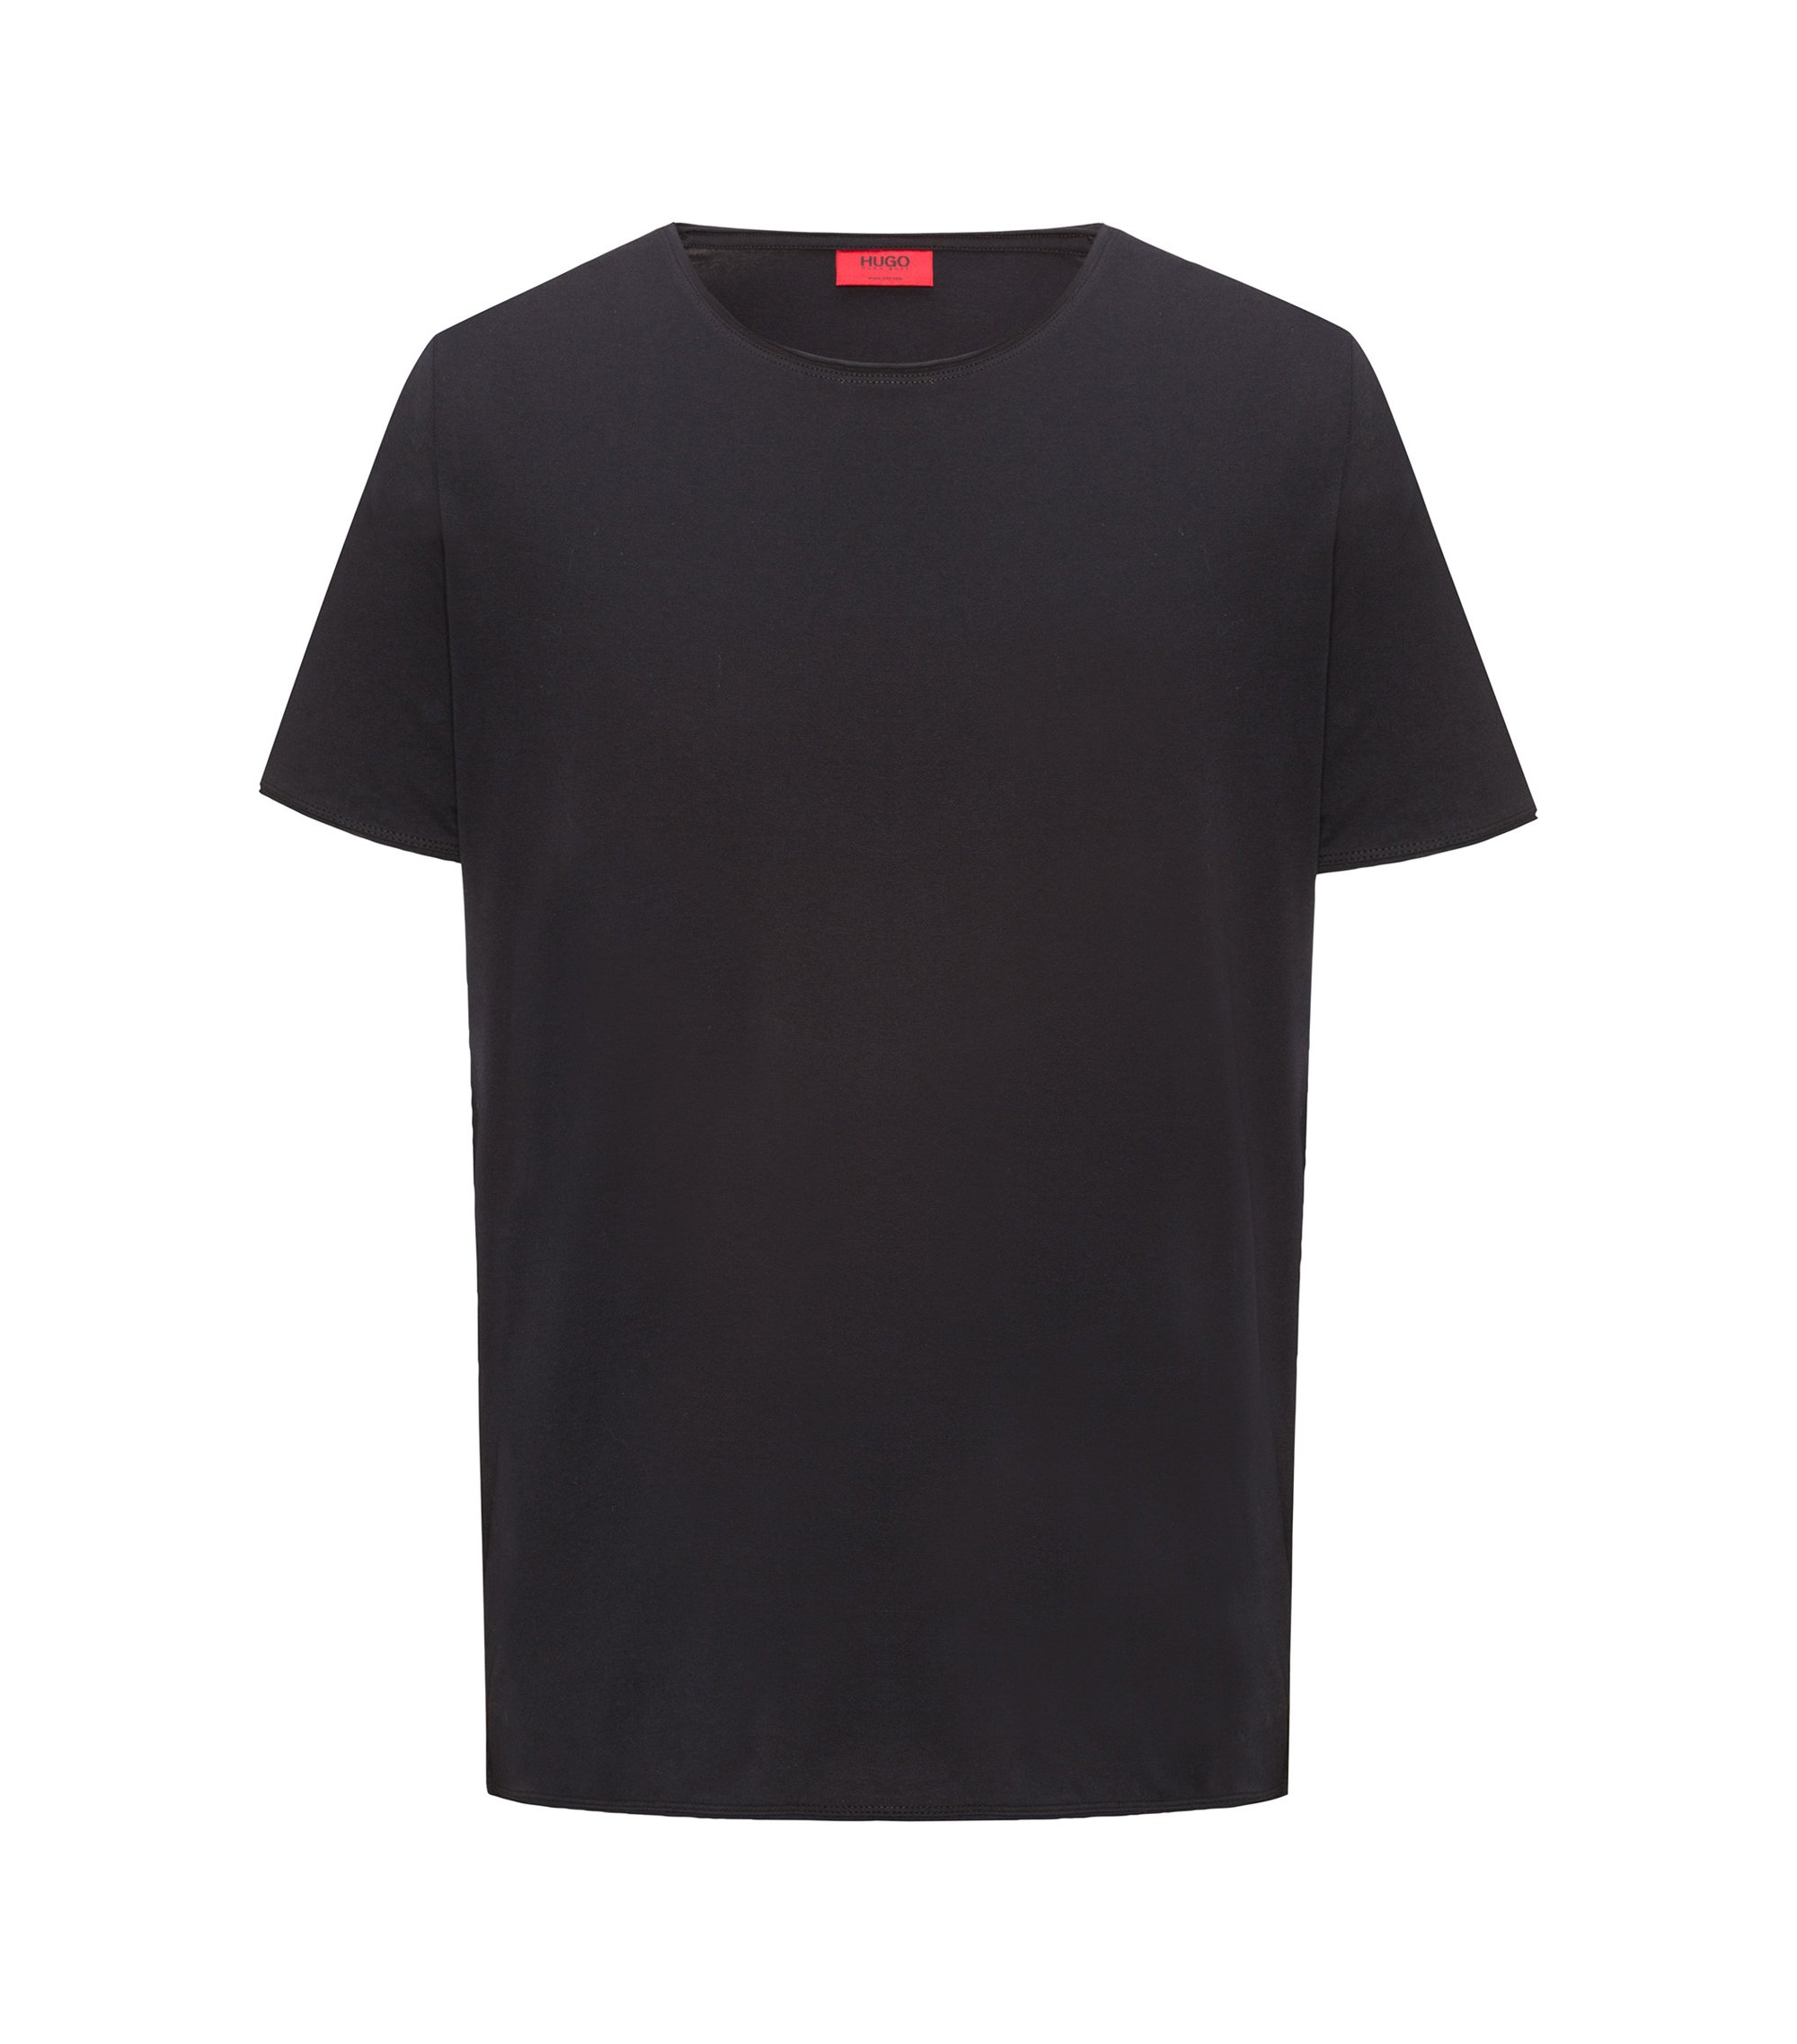 Regular-fit T-shirt in Pima cotton, Black